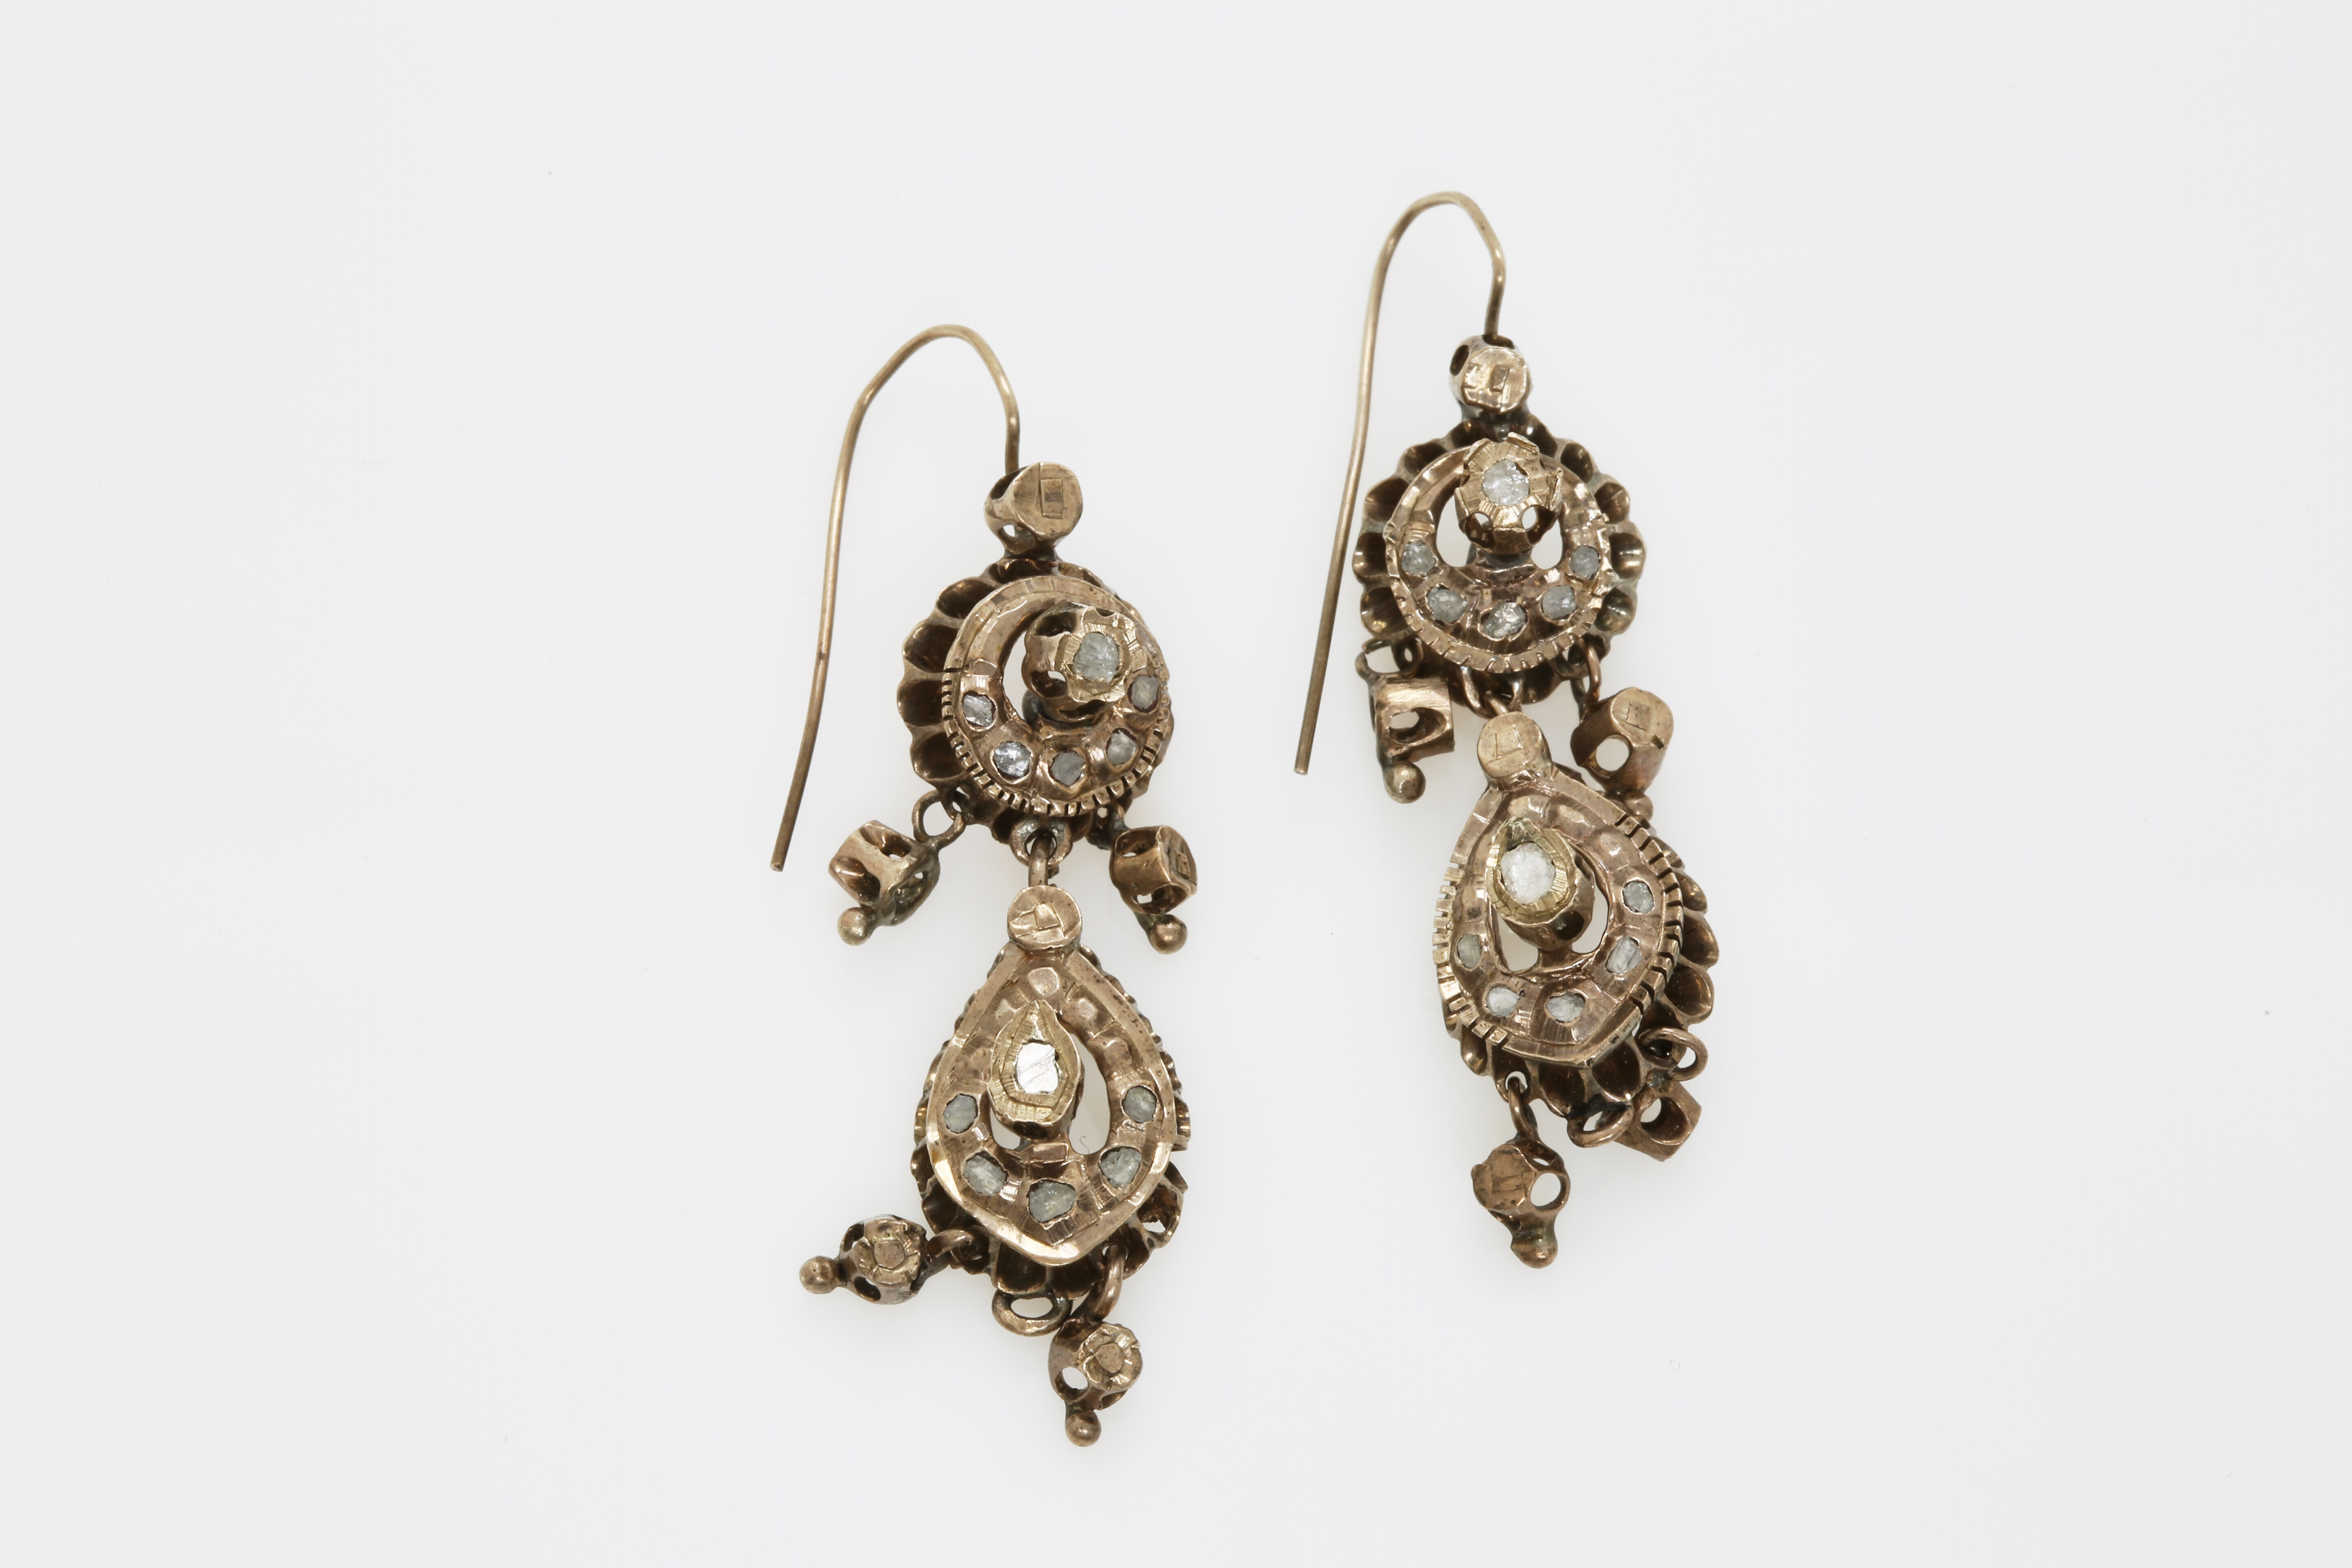 A pair of late 19th century Constantinople gold earrings with diamonds. Approx: 11 gr - Image 2 of 2